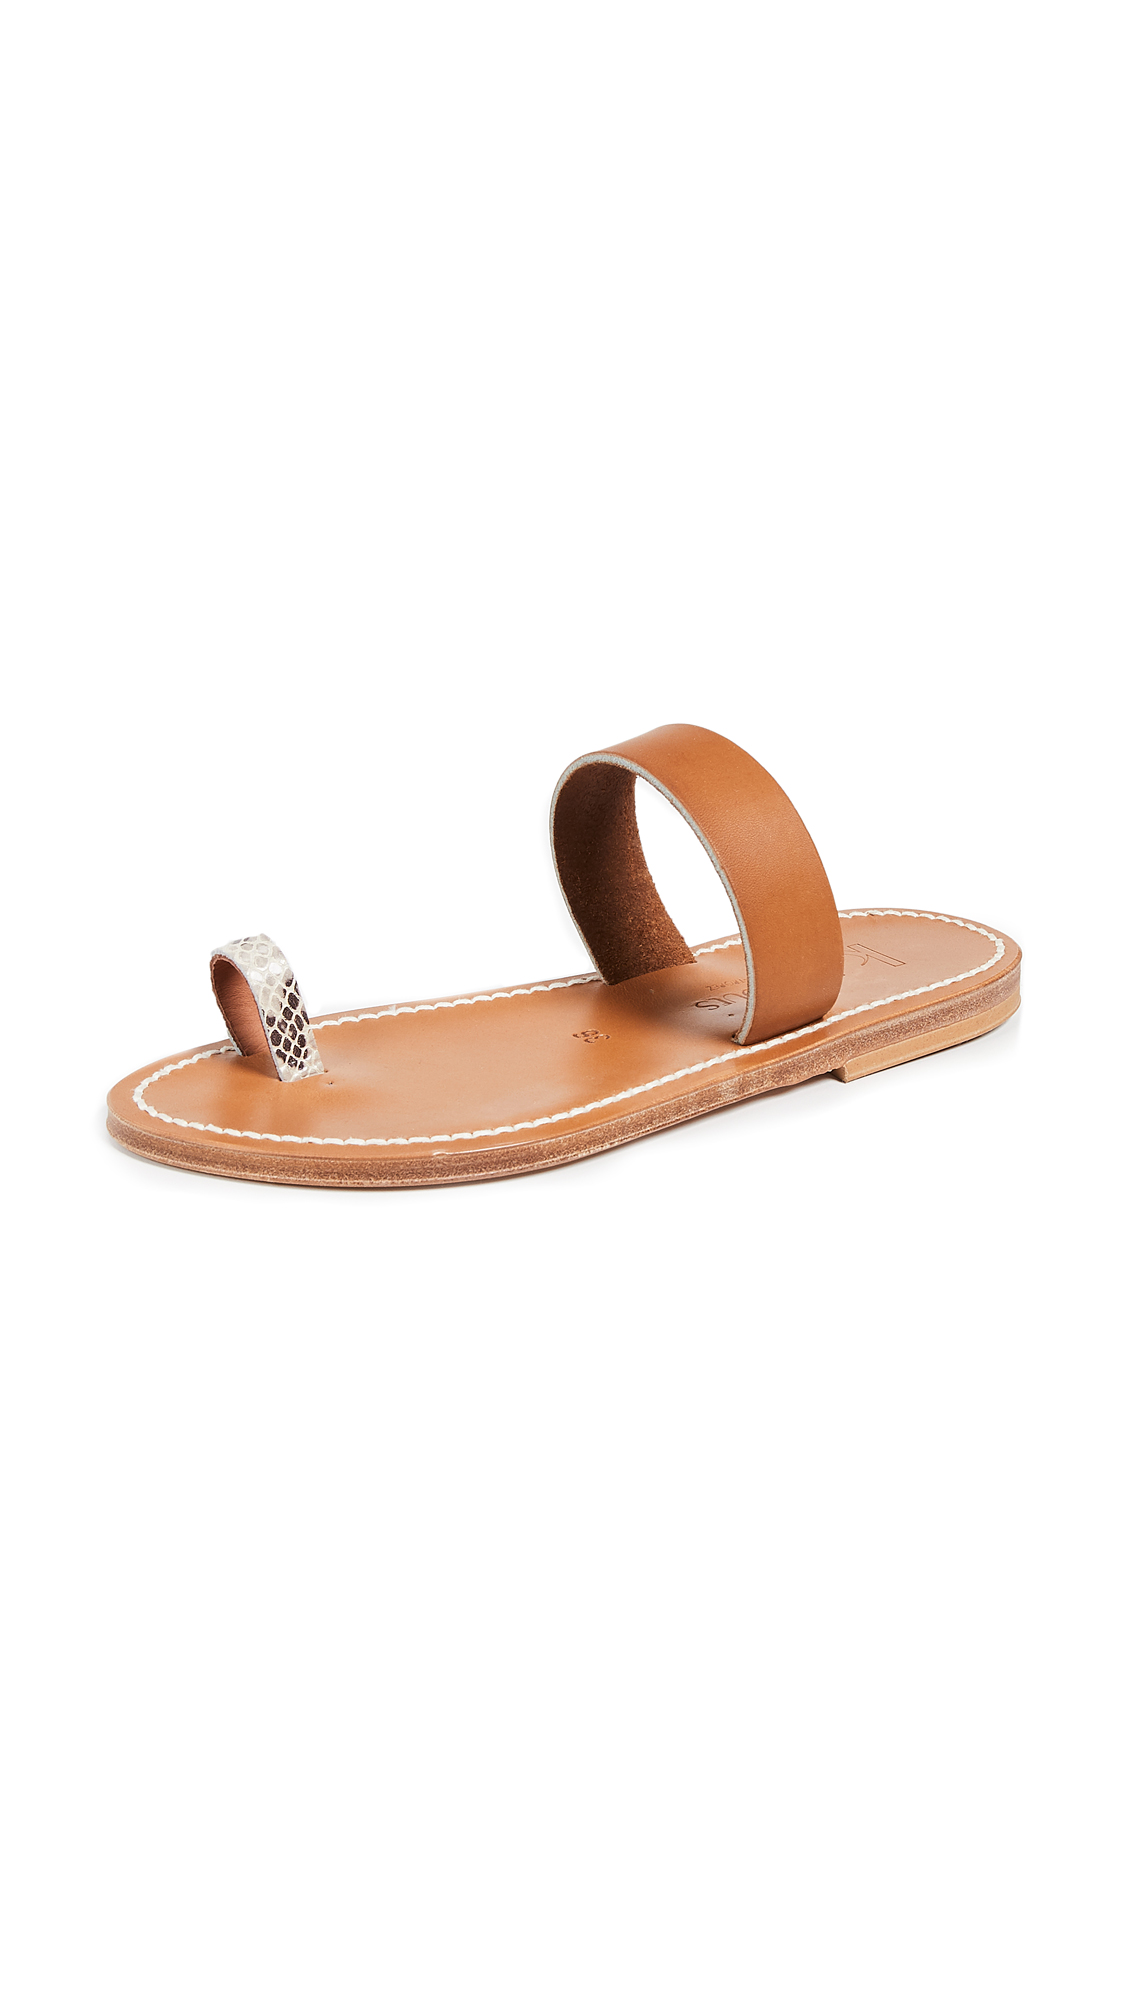 K. Jacques Kali Toe Ring Slides - Kampal Duna/Pul Natural